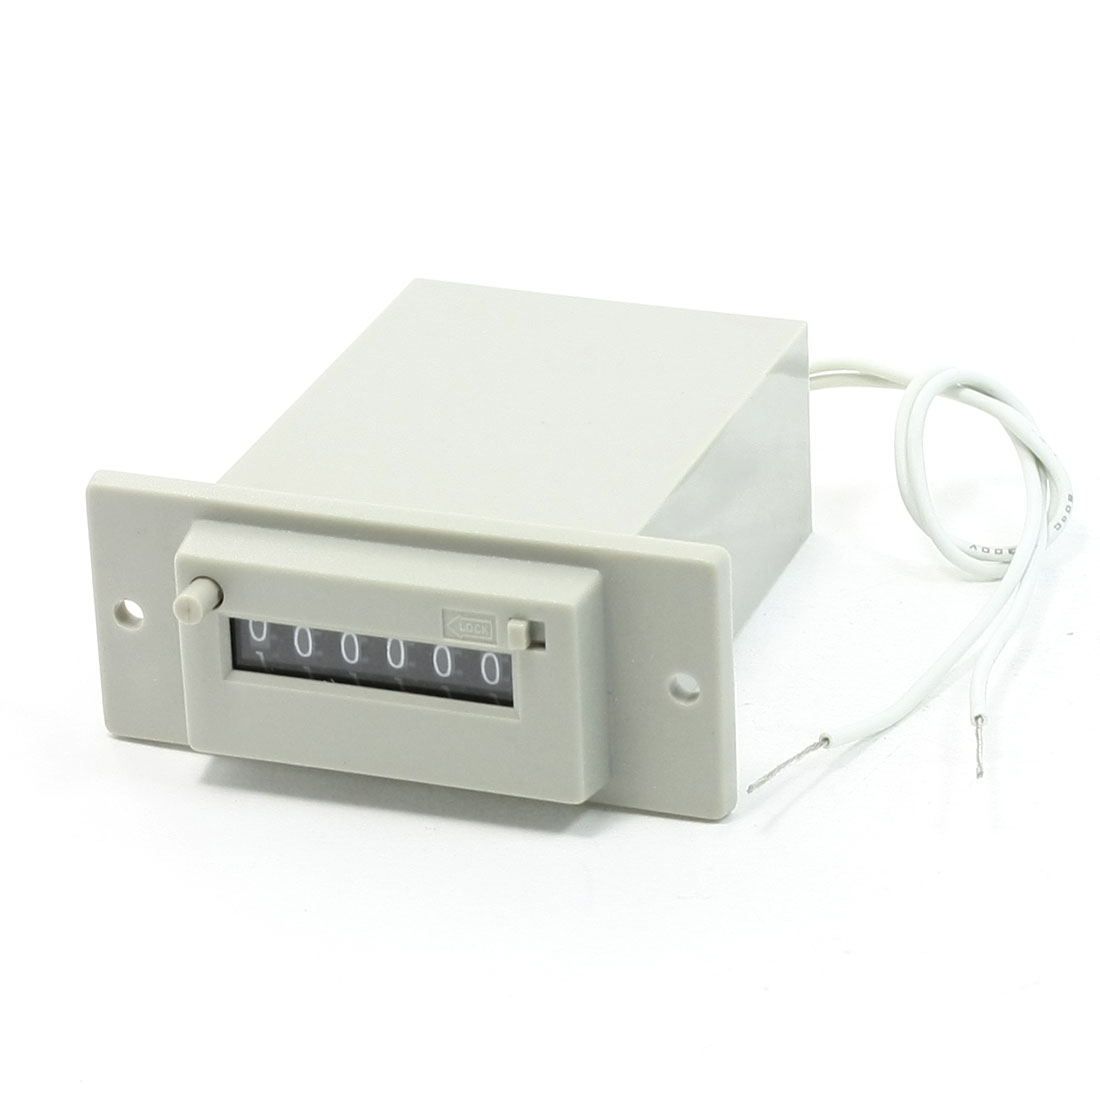 CSK6-DKW AC 220V 50/60Hz 6 Digits 2-Wire Lockable Electronmagnetic Counter